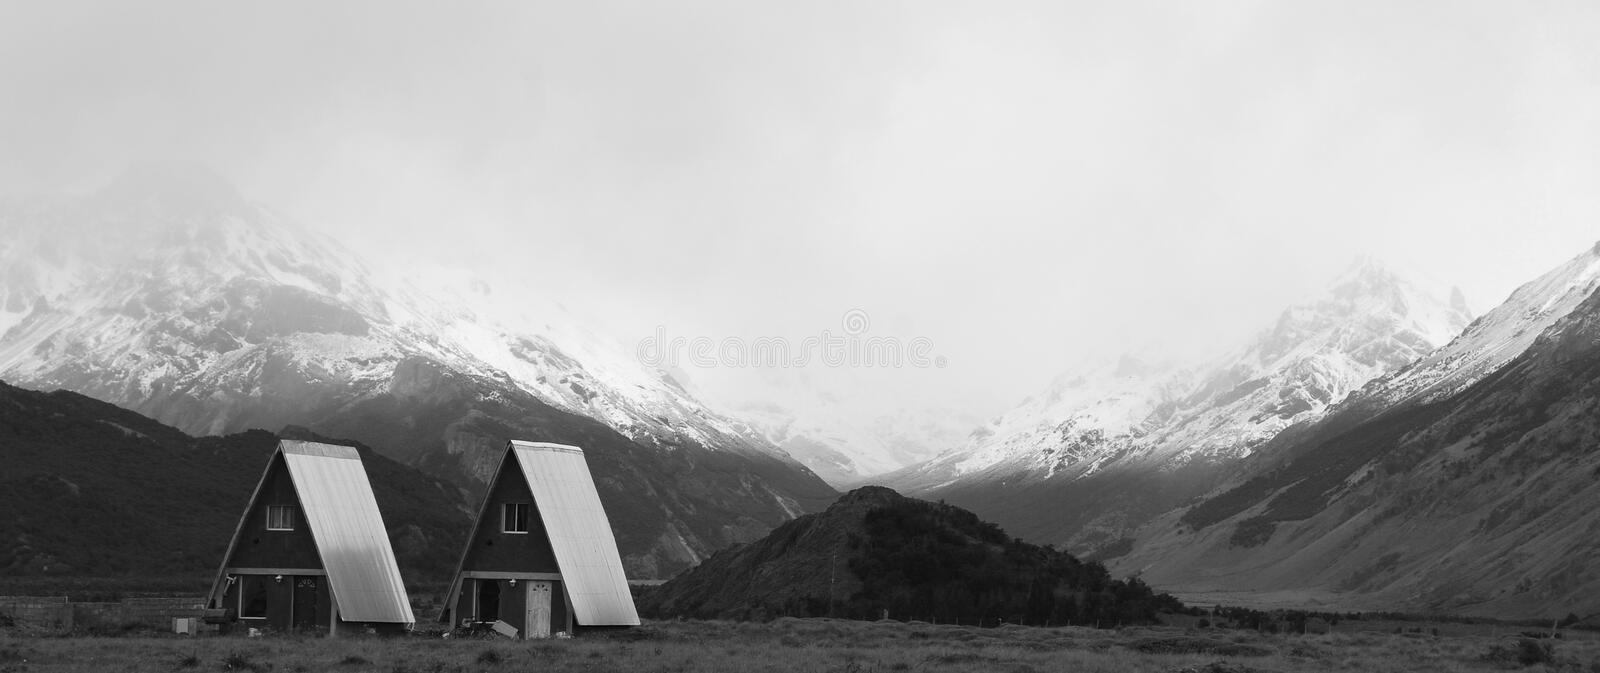 El Chalten typical patagonia house of small mountain village royalty free stock photos